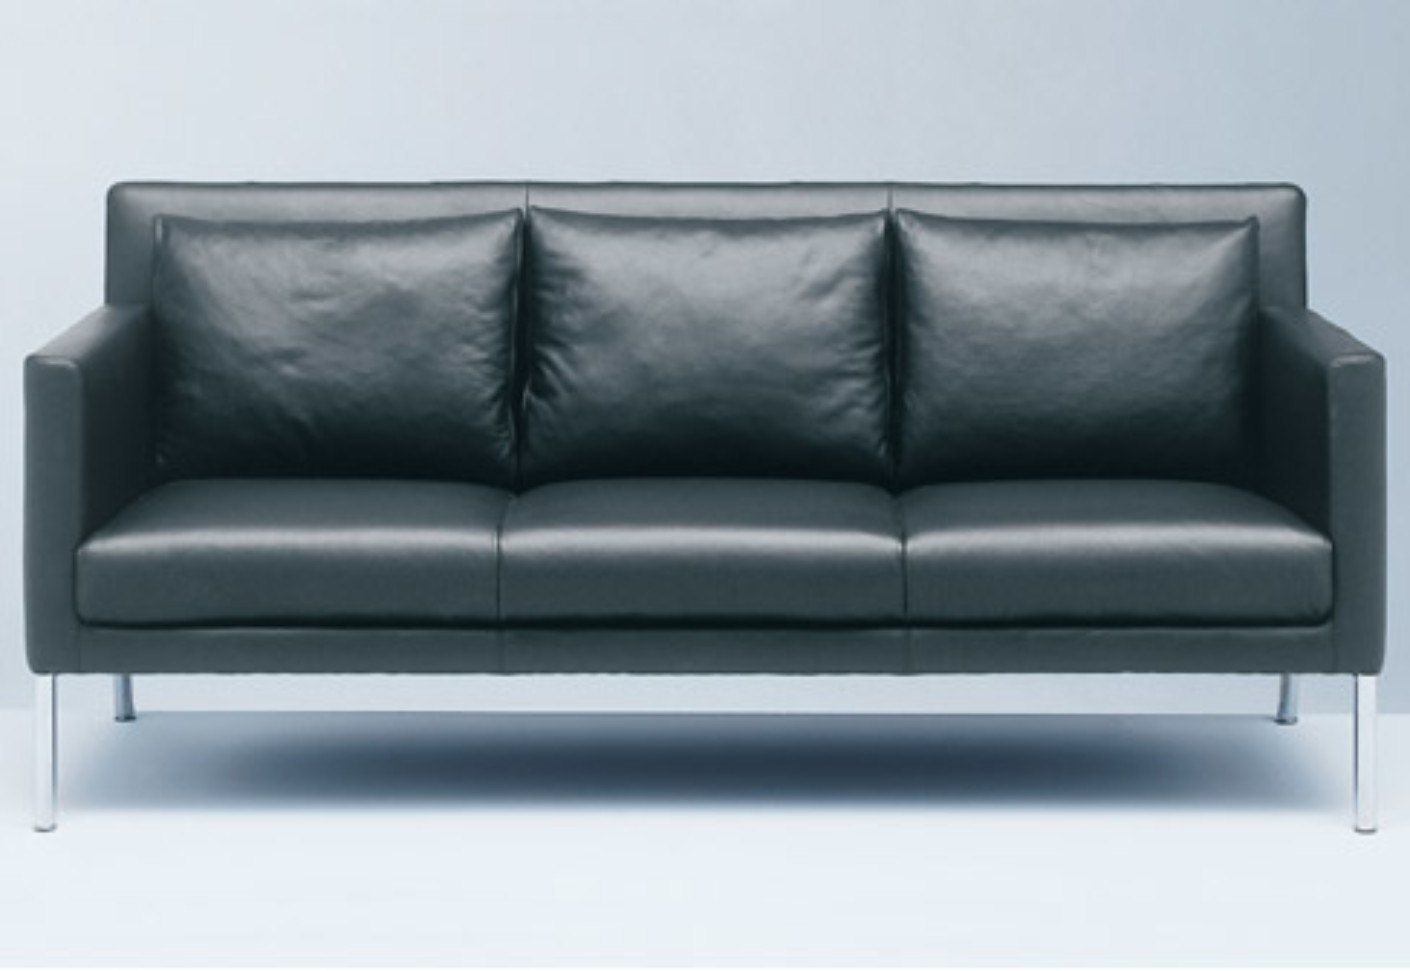 Jason 391 sofa by walter knoll stylepark for Sofa yuuto walter knoll